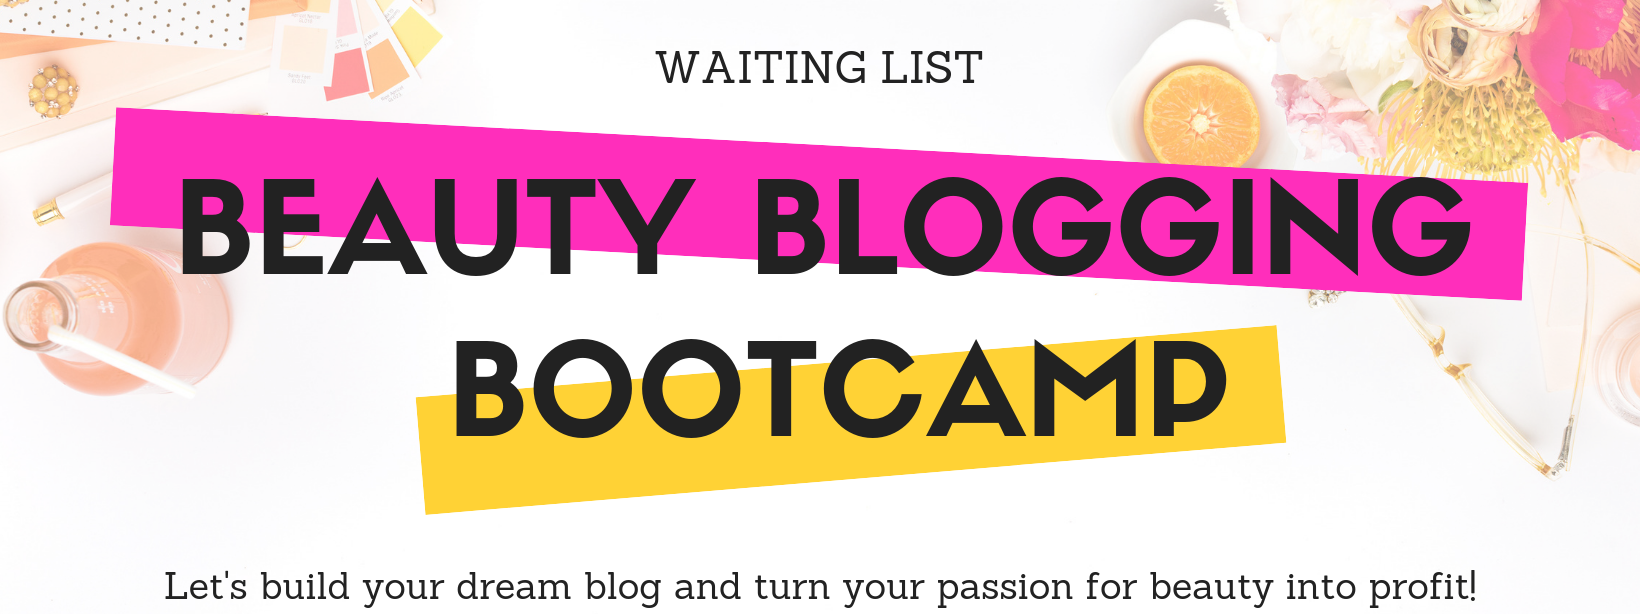 Beauty Blogging Bootcamp Waiting List